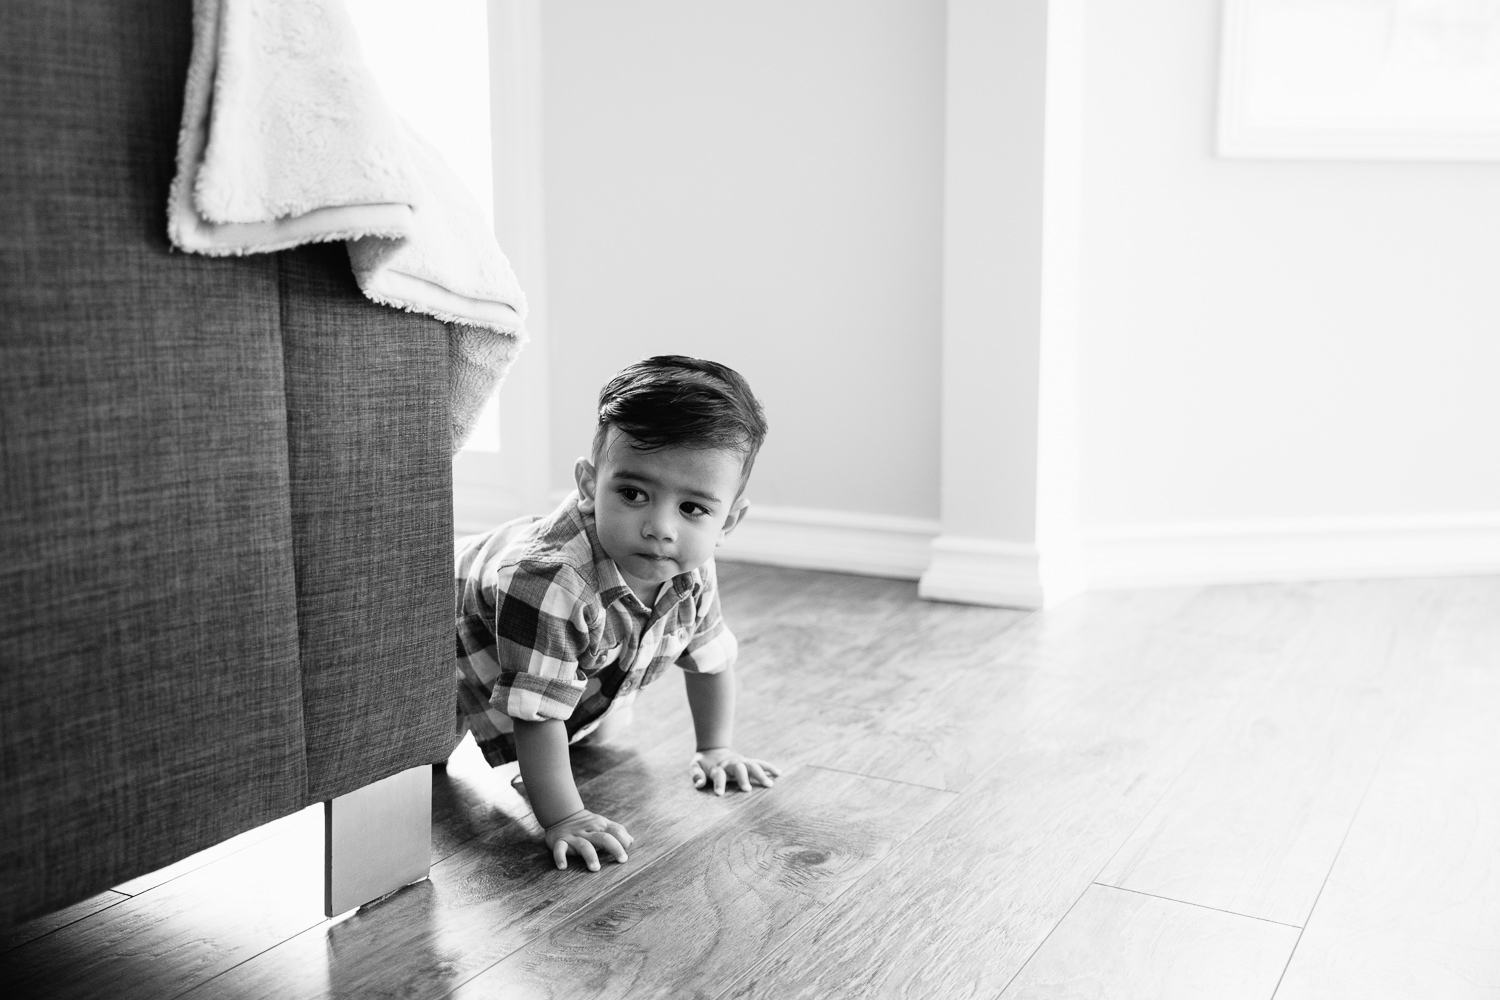 1 year old baby boy with dark hair and eyes in plaid button down shirt crawling on hardwood floor past couch - York Region Lifestyle Photography